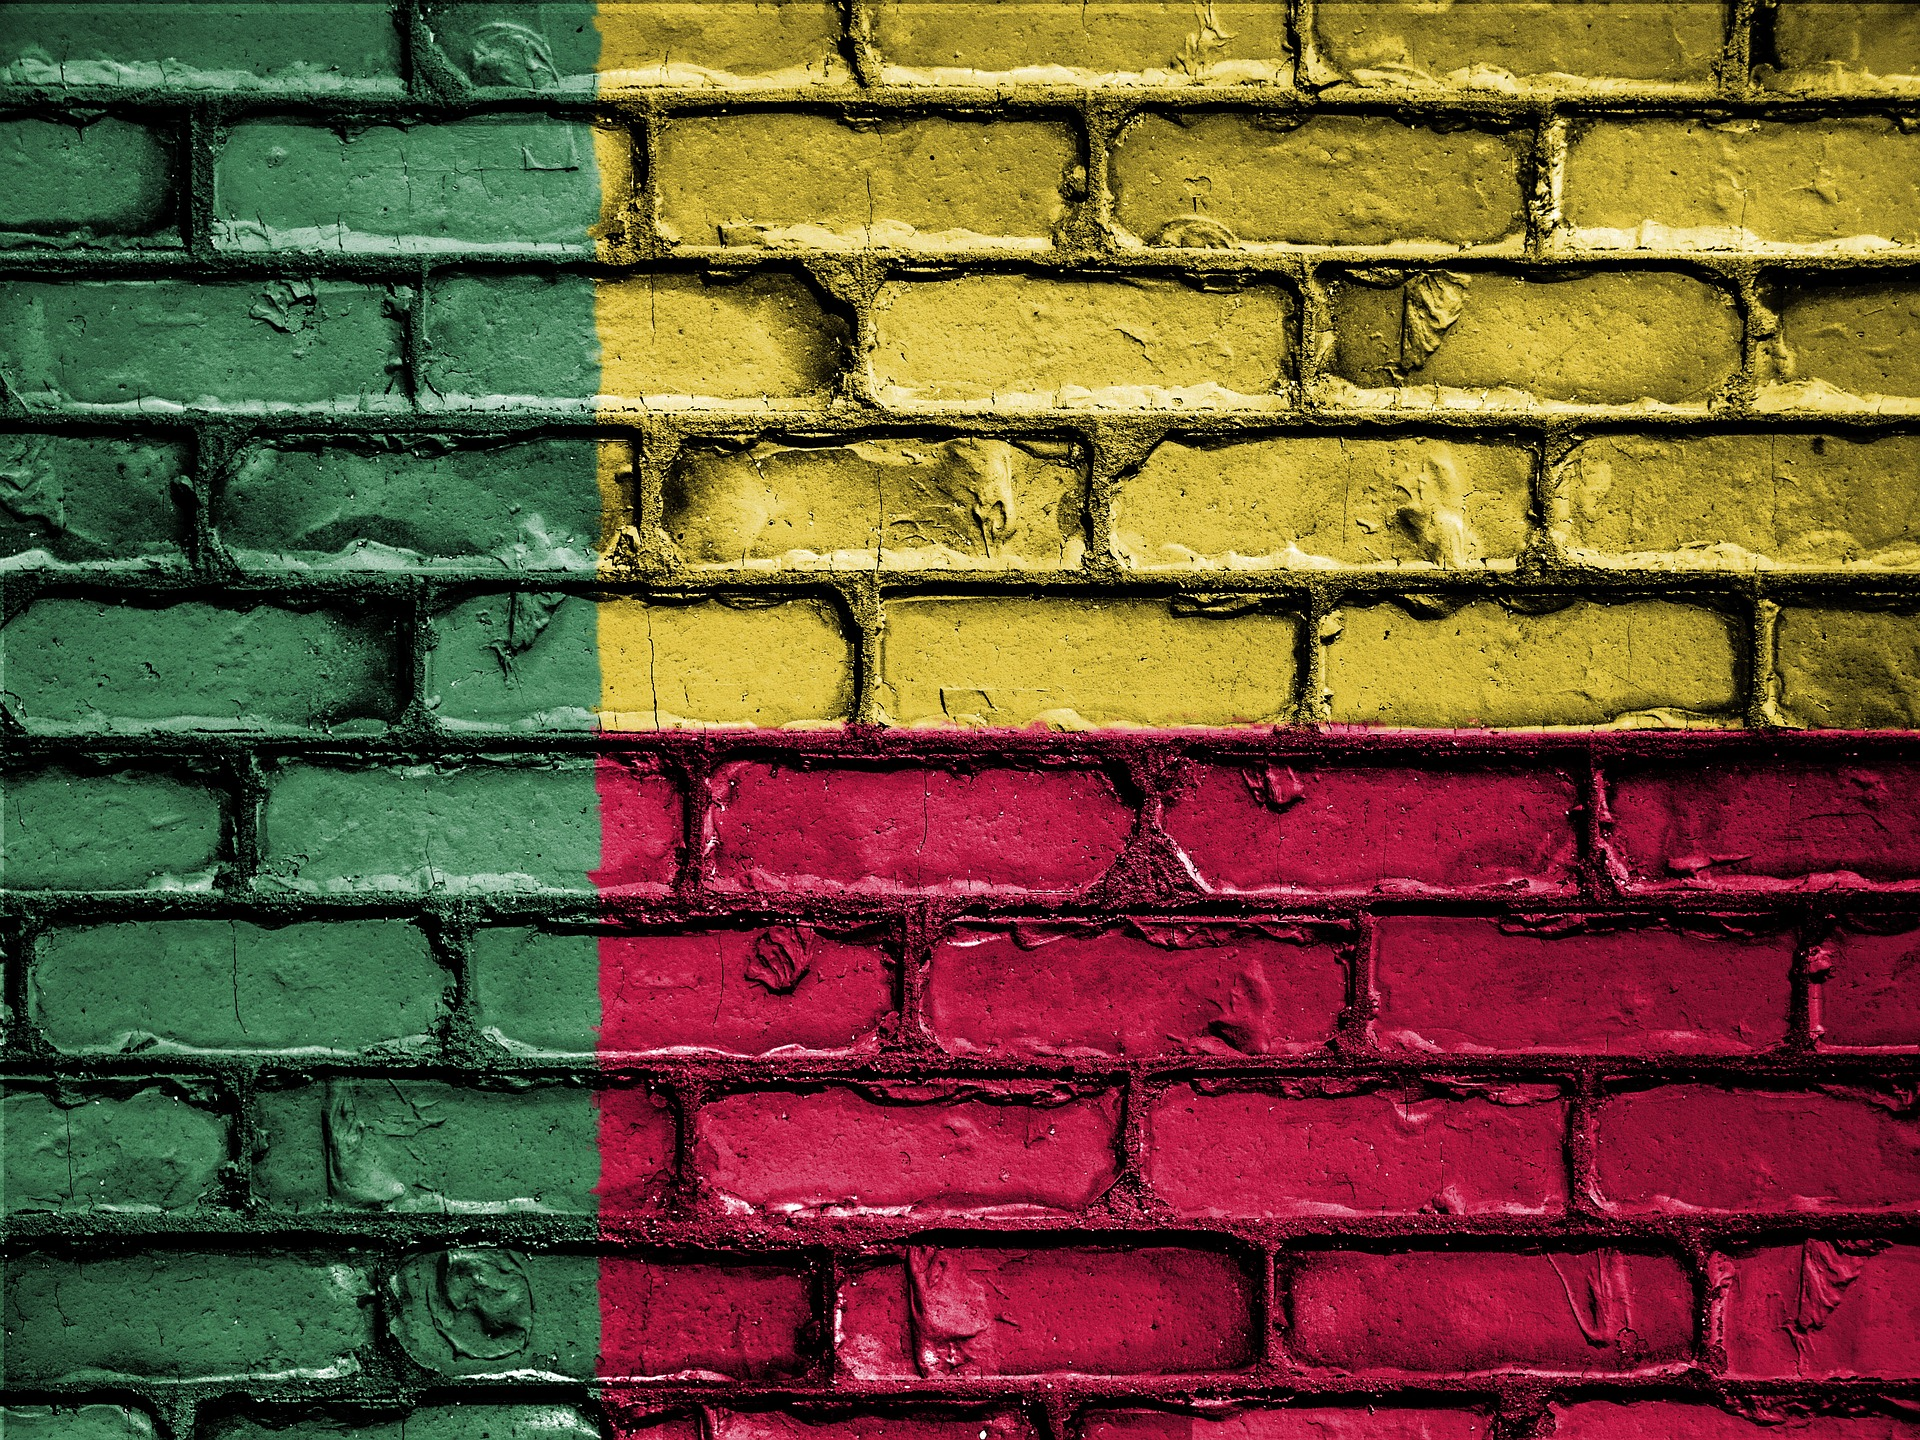 Benin flag painted on brick wall